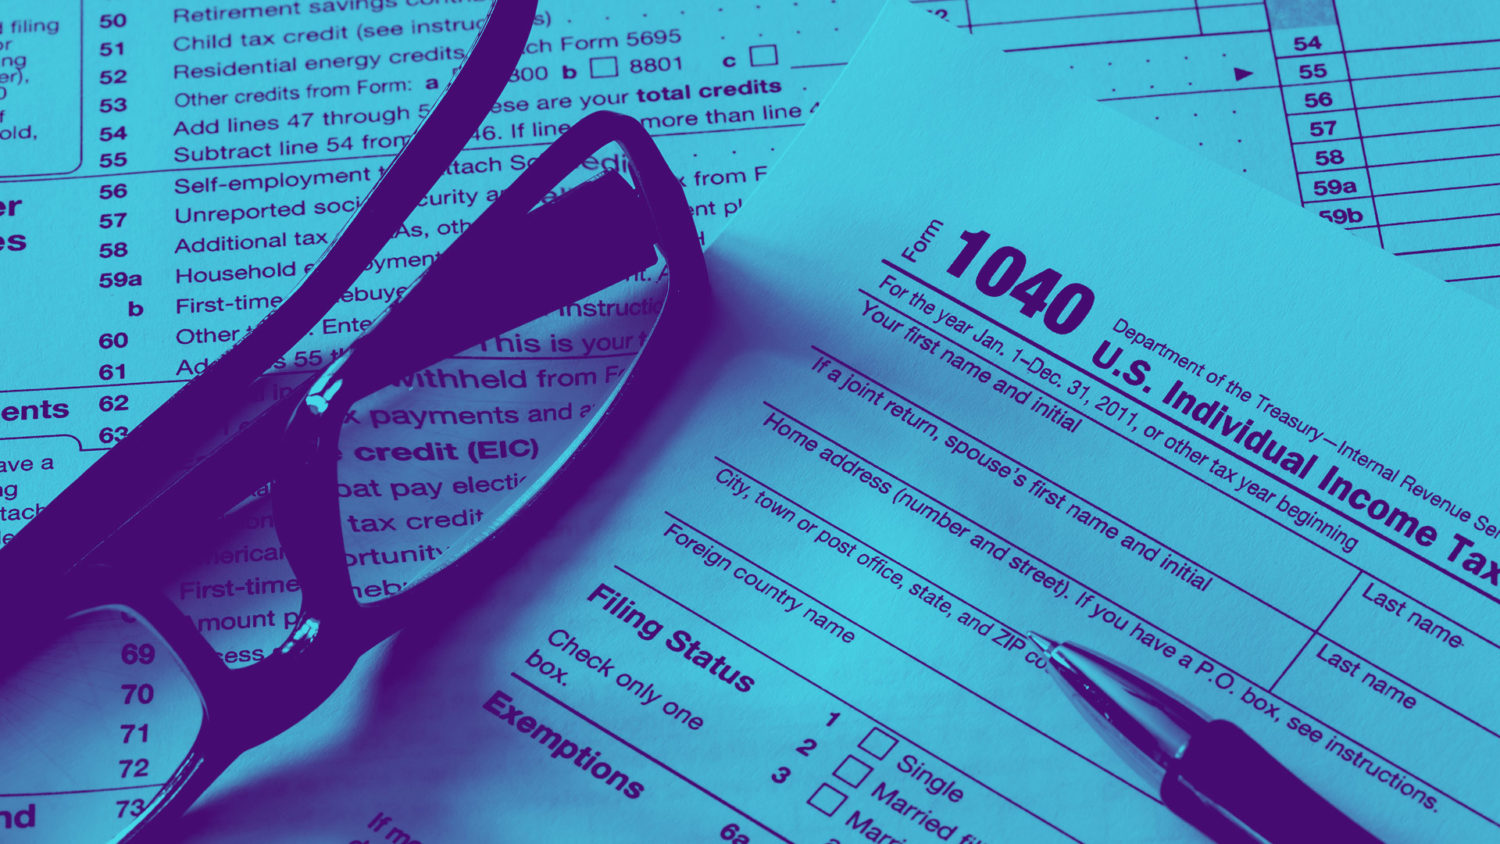 Crypto tax startup TaxBit raises $100 million in round backed by PayPal, Bill Ackman and more